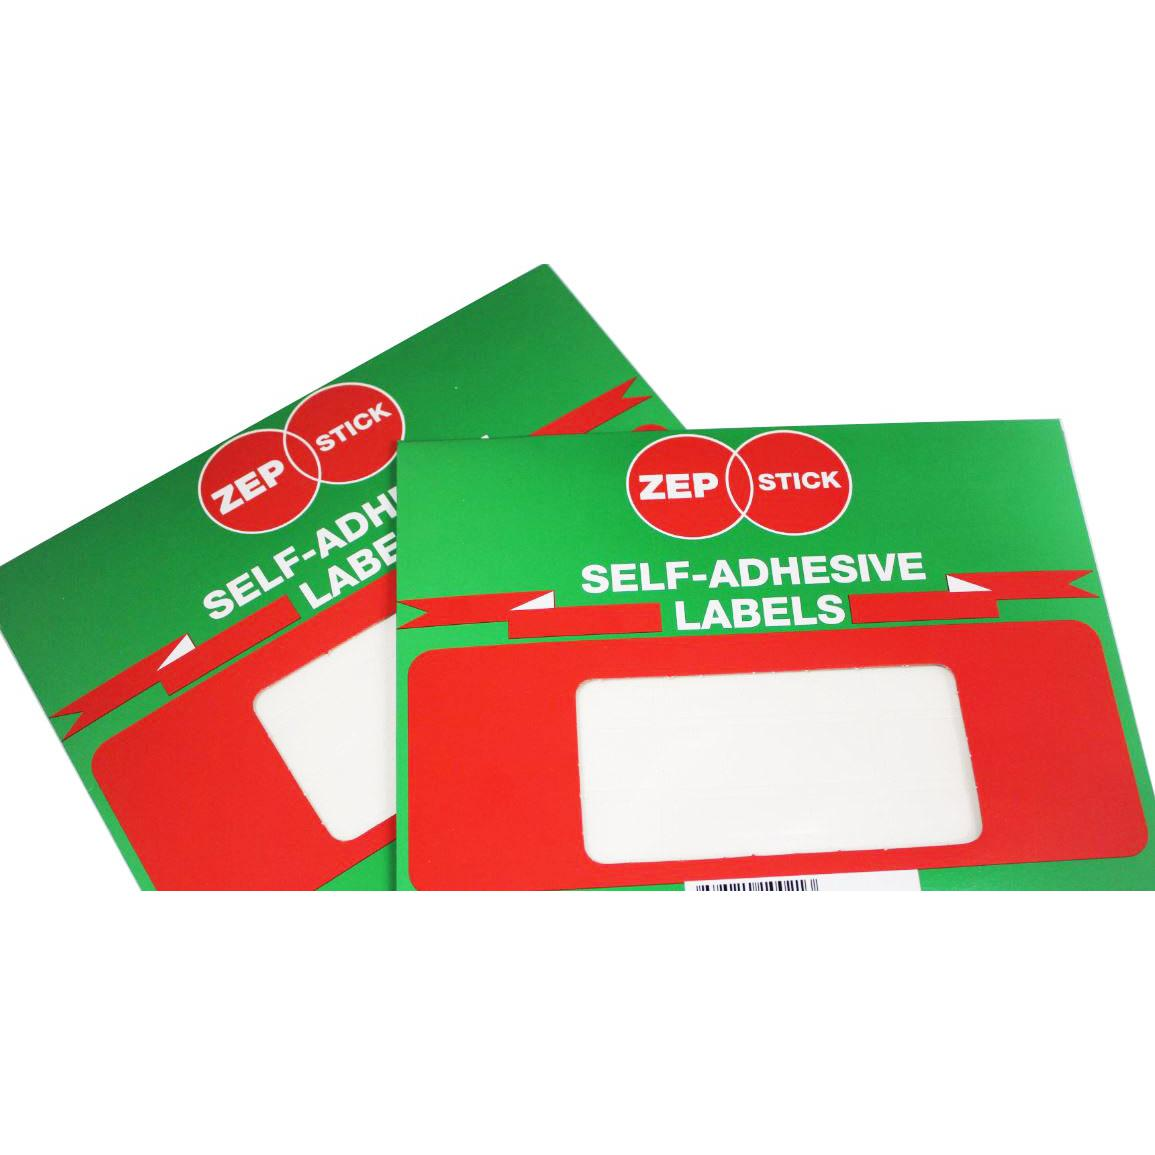 Zepstick Self Adhesive White Labels 10 x 14mm 1014